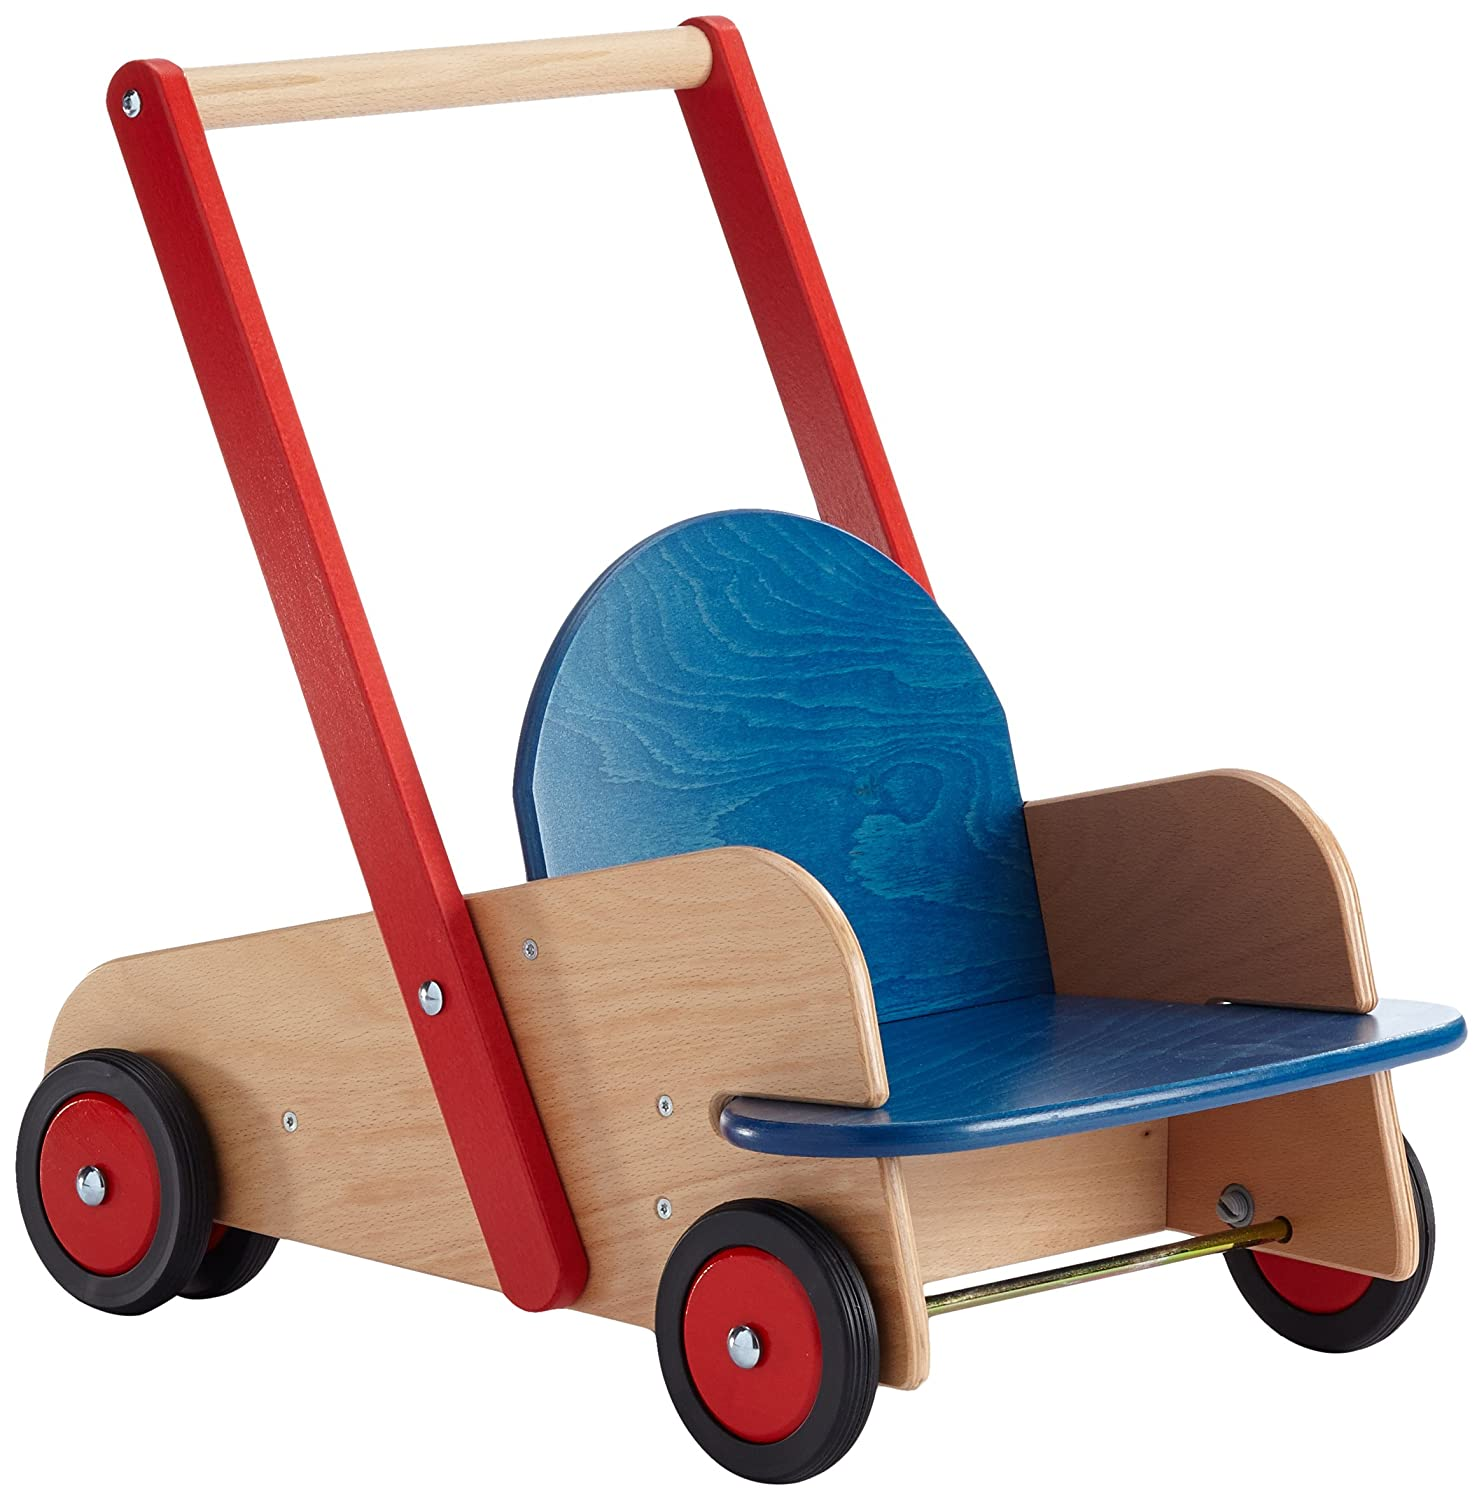 Sturdy Walker Wagon, includes seat and storage area, rubber tires on wood rims